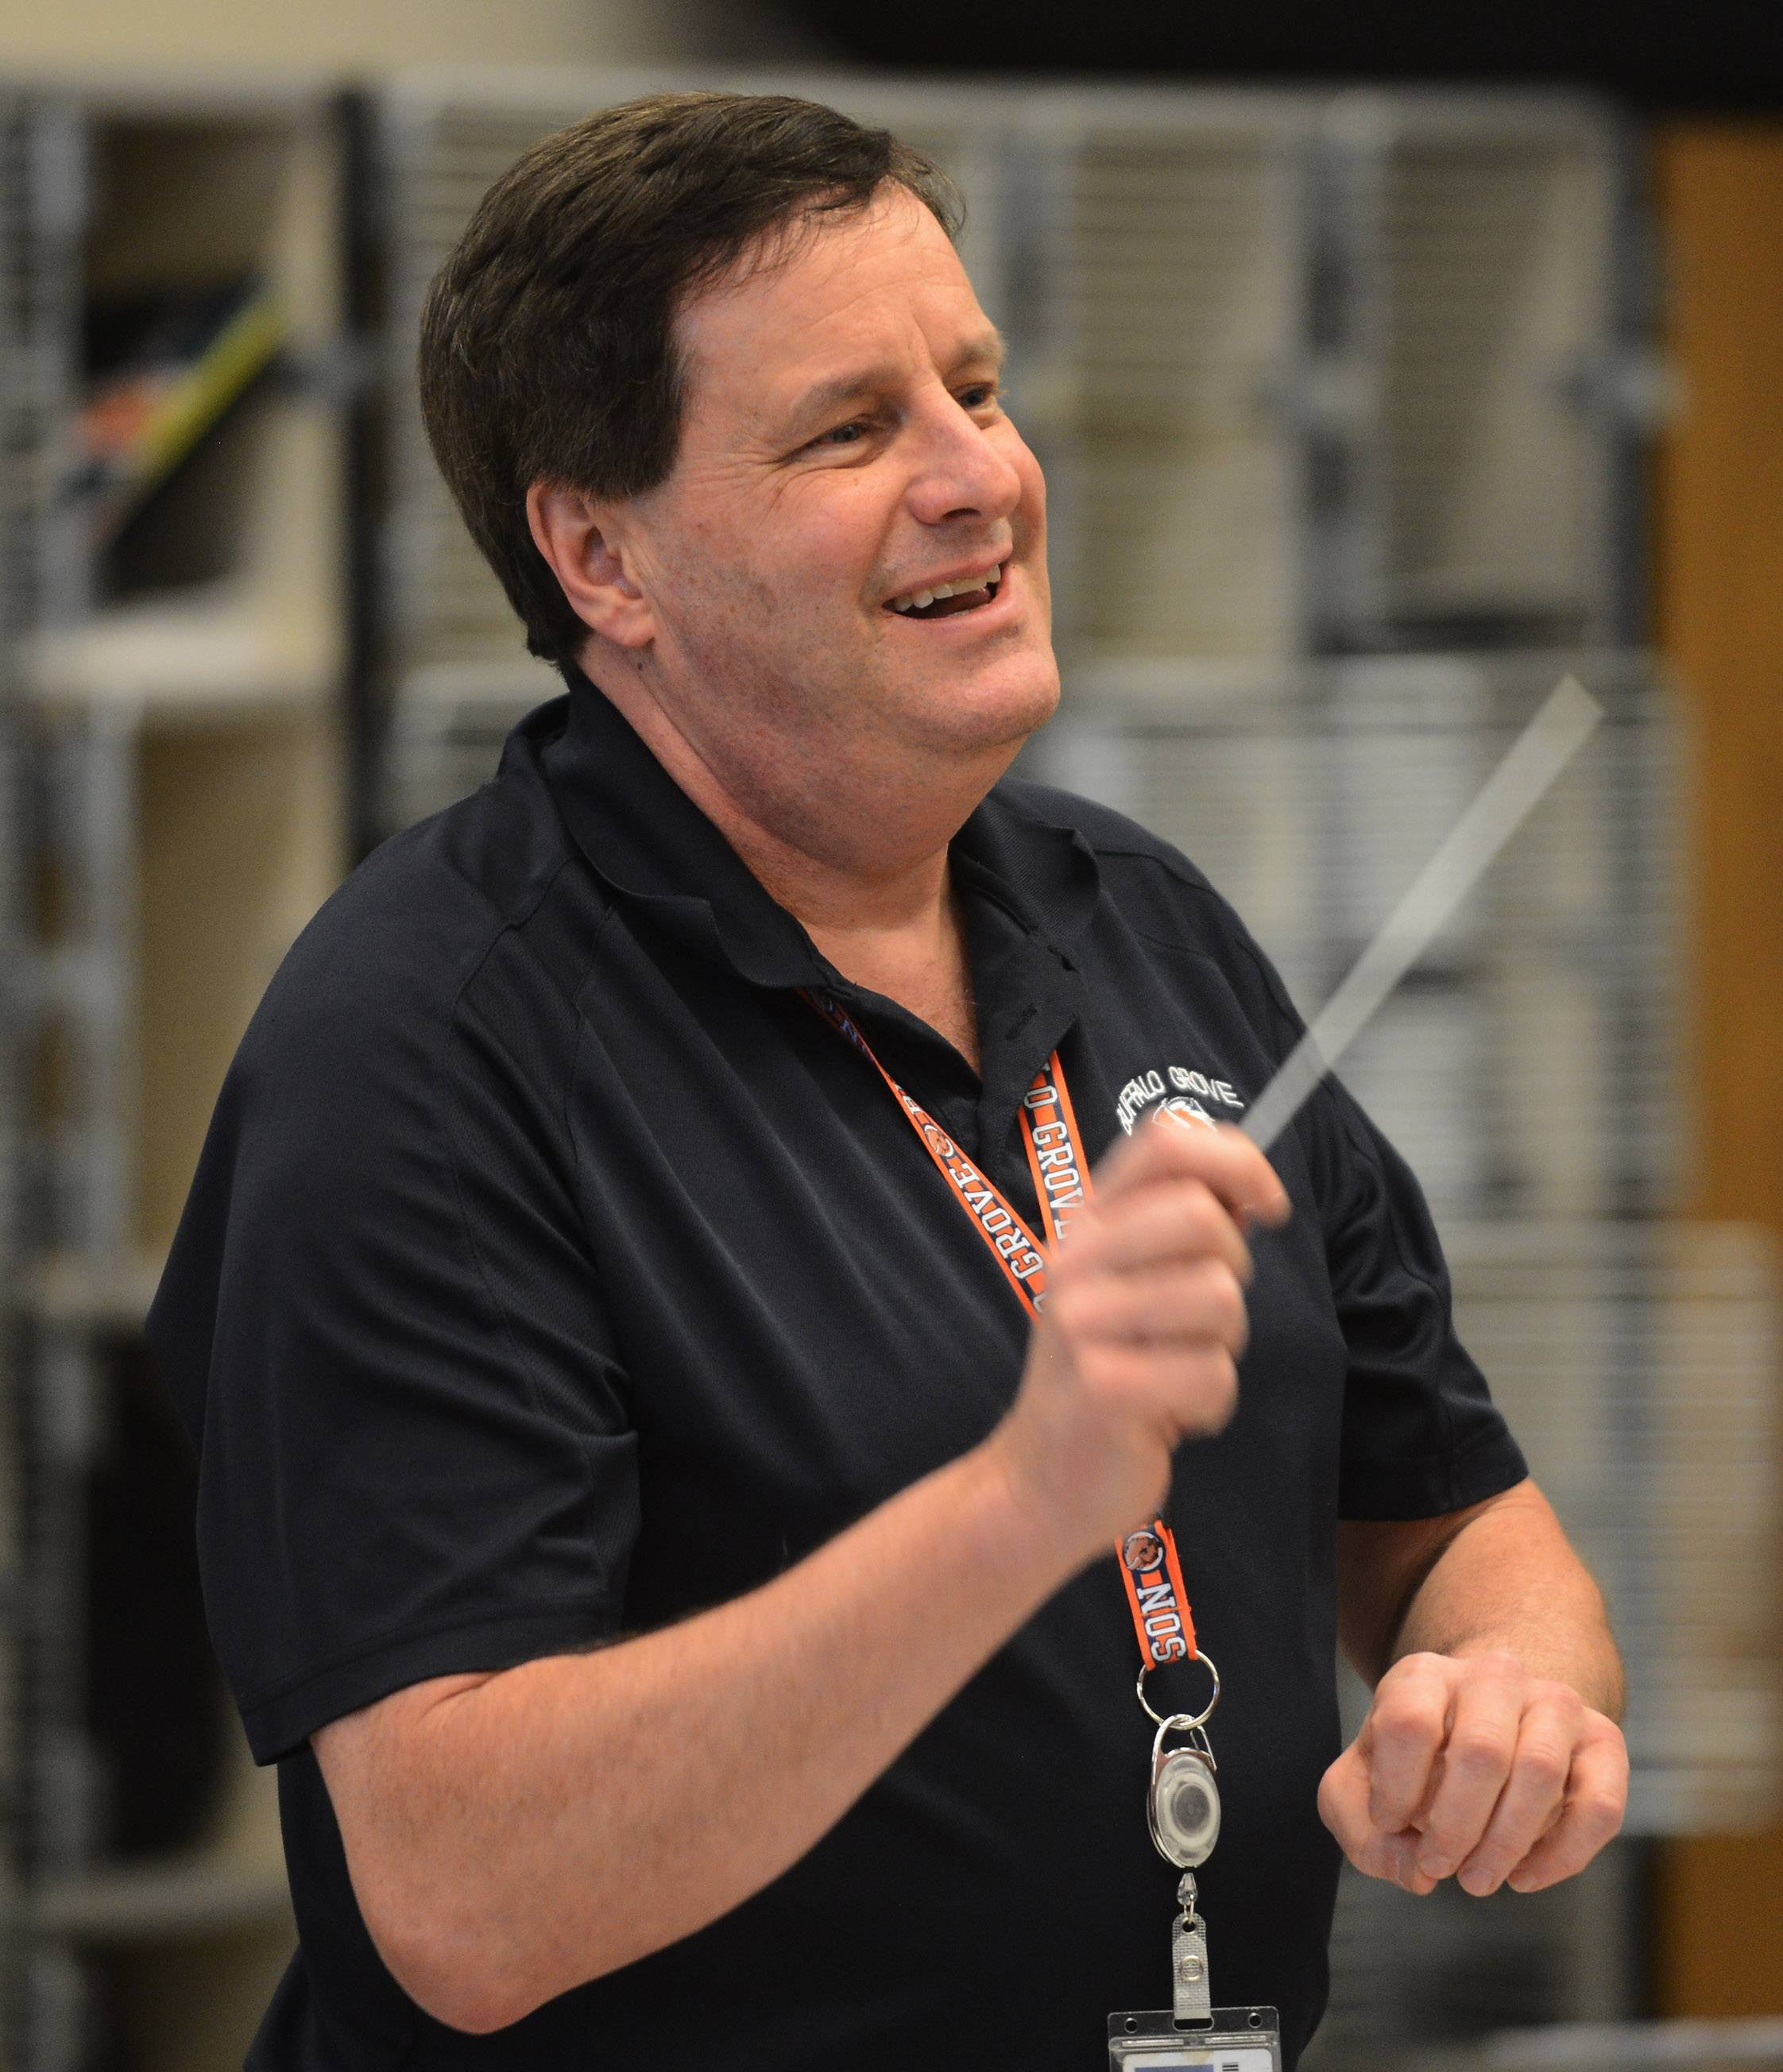 Buffalo Grove High School band teacher Ed Jacobi, who has taught for 37 years, is retiring at the end of the school year.